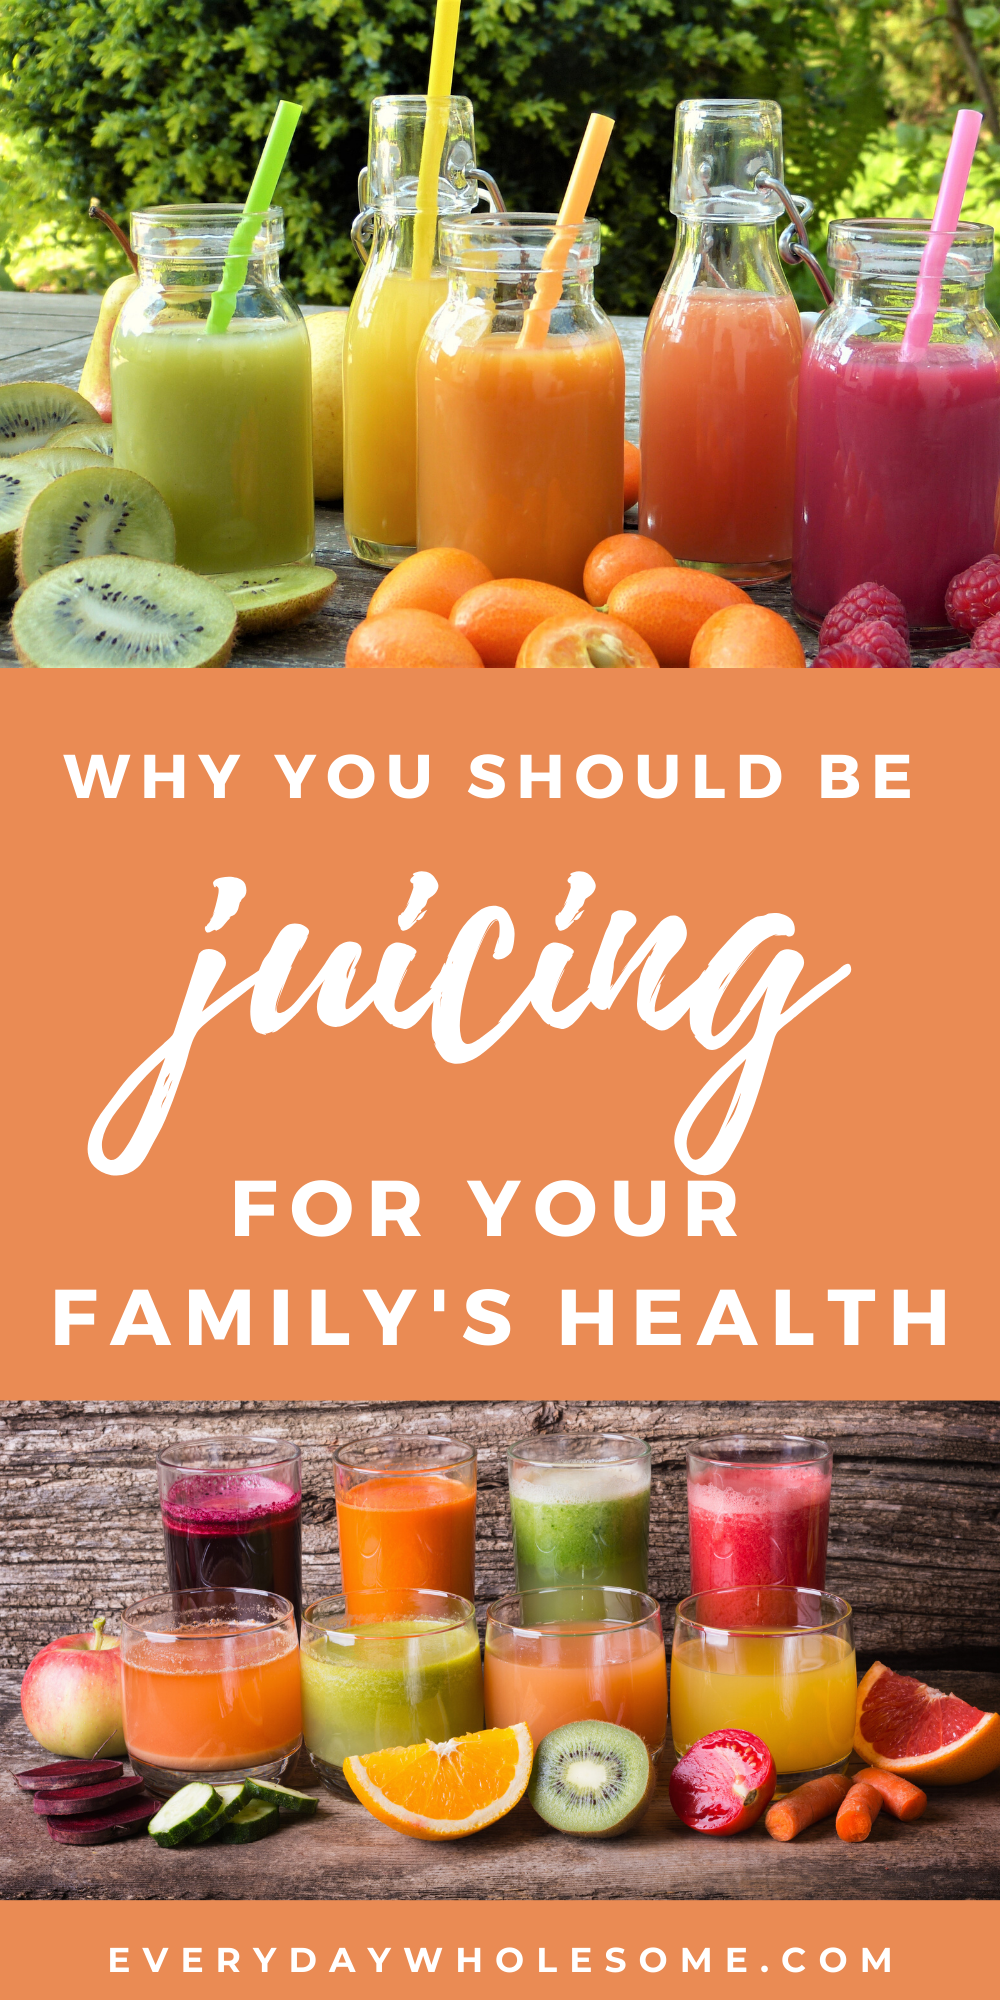 JUICING RECIPES FOR HEALTH, WEIGHT LOSS AND BEGINNERS FOR WEIGHT LOSS